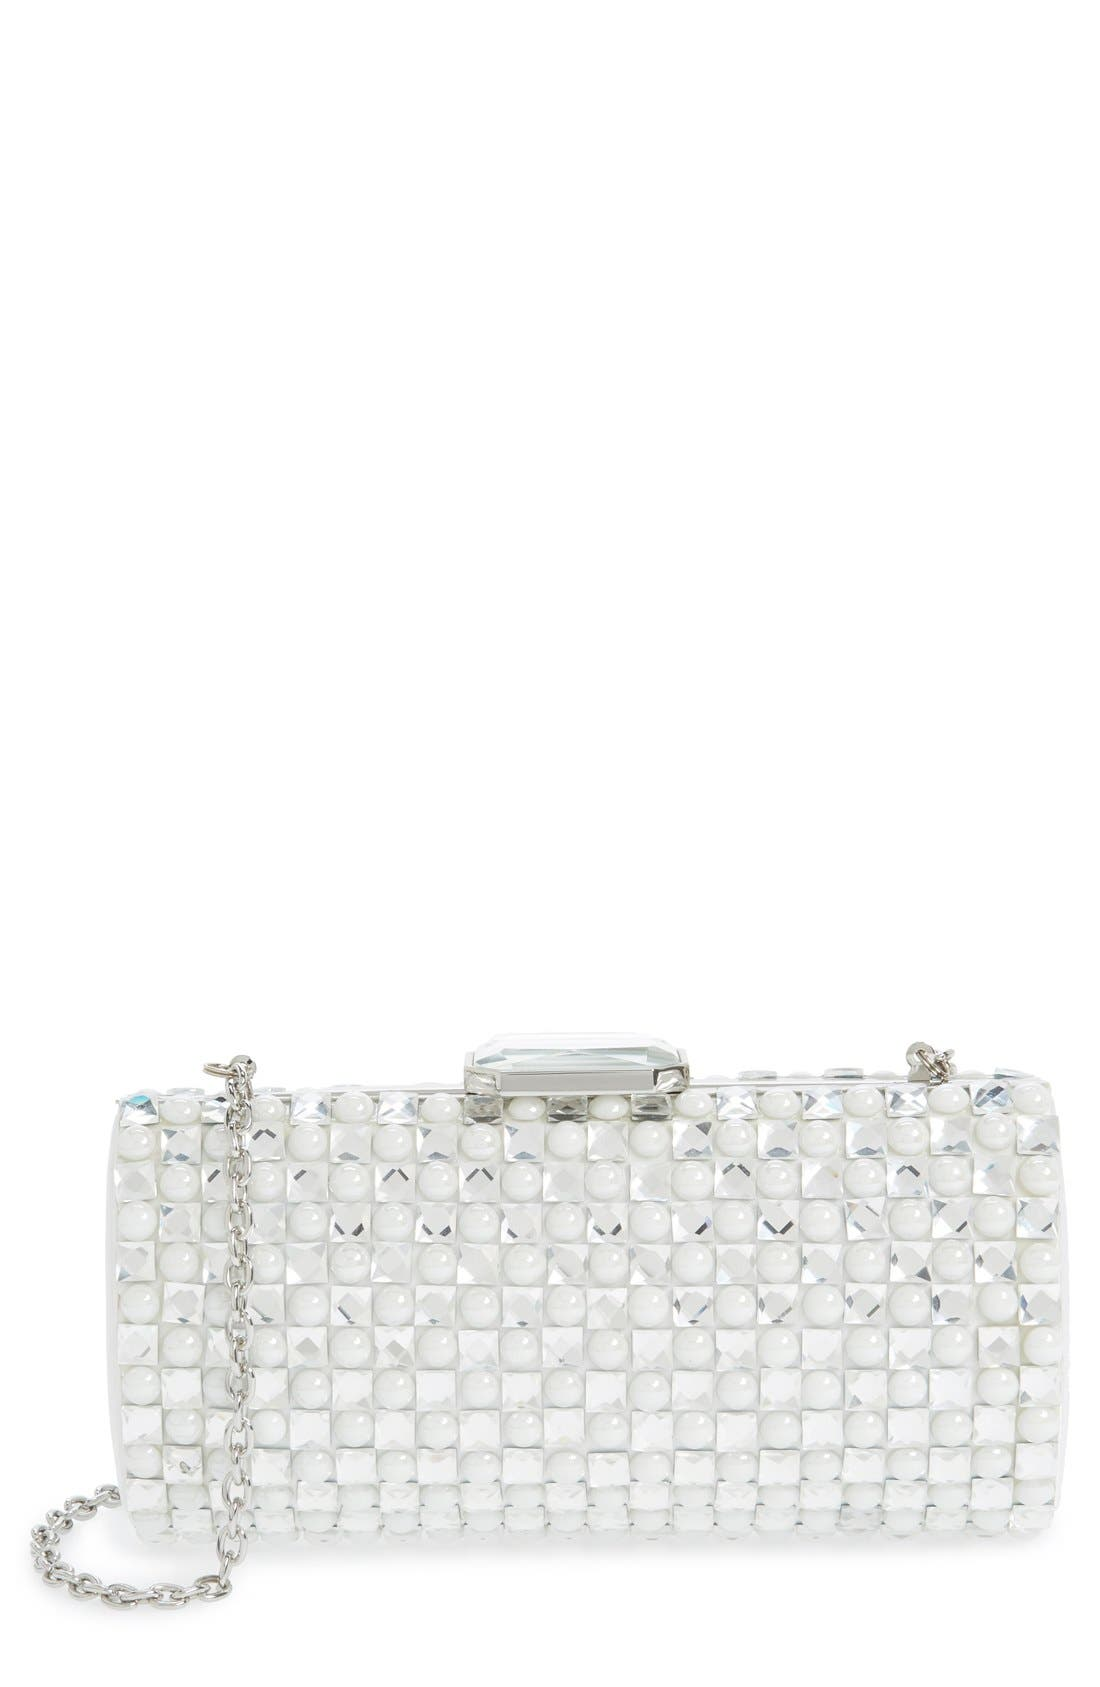 Crystal Clutch,                             Main thumbnail 1, color,                             Silver/White